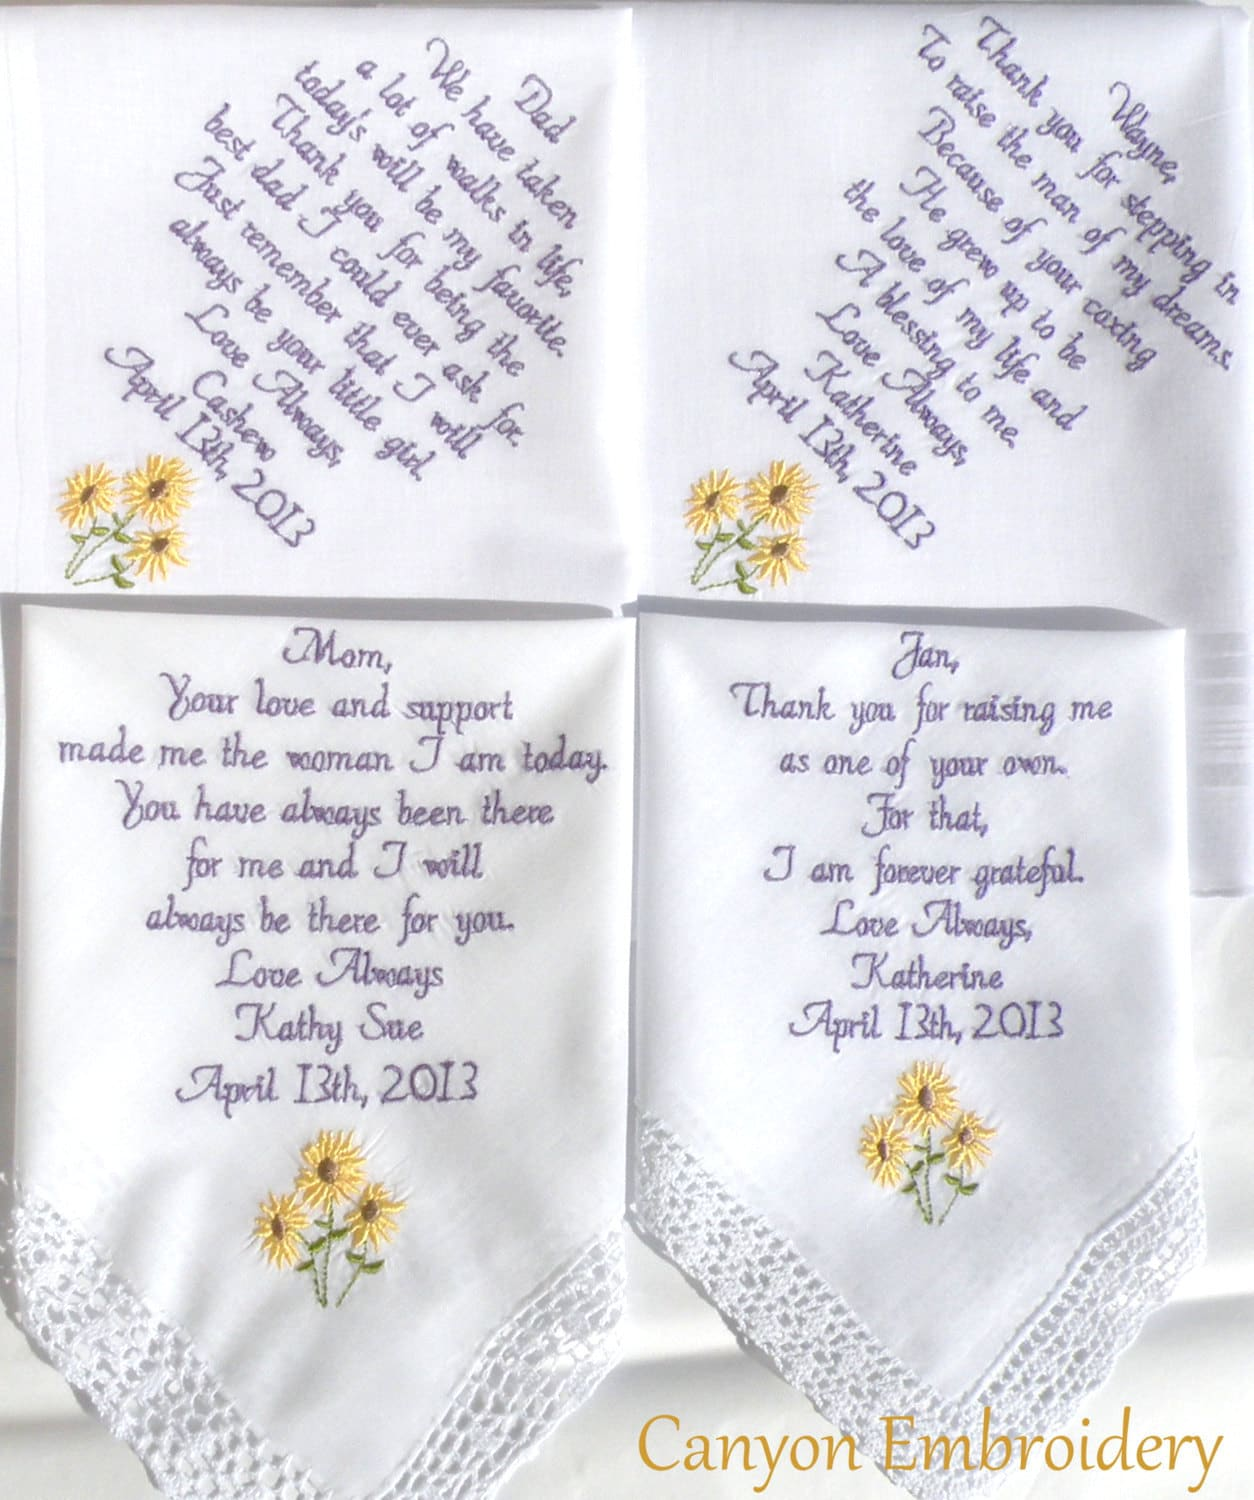 embroidered handkerchiefs wedding initials sunflower wedding theme embroidered handkerchiefs sunflowers set of four by canyon embroidery